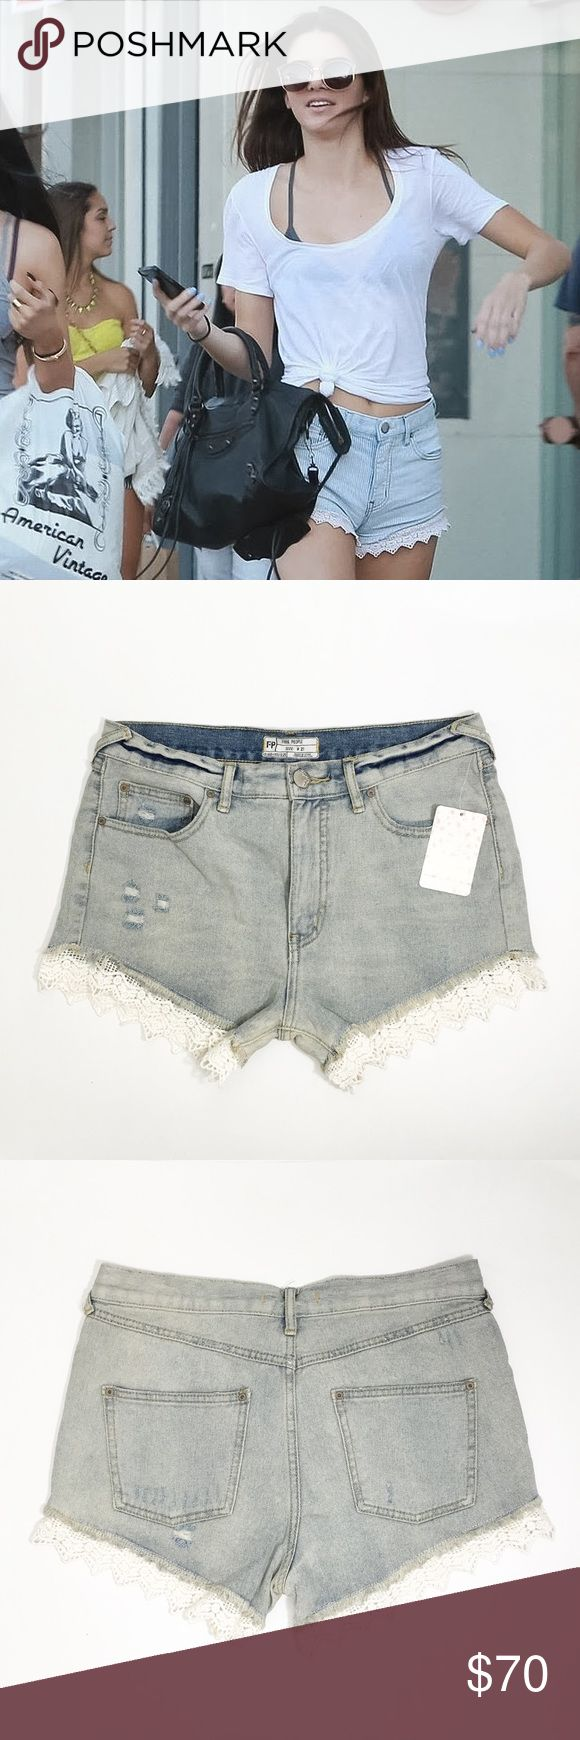 "Free People Light Denim Cutoff Lace Hem Shorts NO TRADES  As seen on Kendall Jenner, these light washed cut-off denim shorts crafted from fine cotton gets distressed, weathered & topped with a laced hem balancing between rugged & feminine.  Details: - Cotton - Machine wash - Imported - Waist: 31"" - Inseam: 3"" - Front Rise: 10.5"" - Back rise: 13.5"" - Thigh opening 22""  NOTES: - Pics 2-4 photographed by me. - Item's color WILL slightly vary from photos. - Paper tag is faintly damaged. Free…"